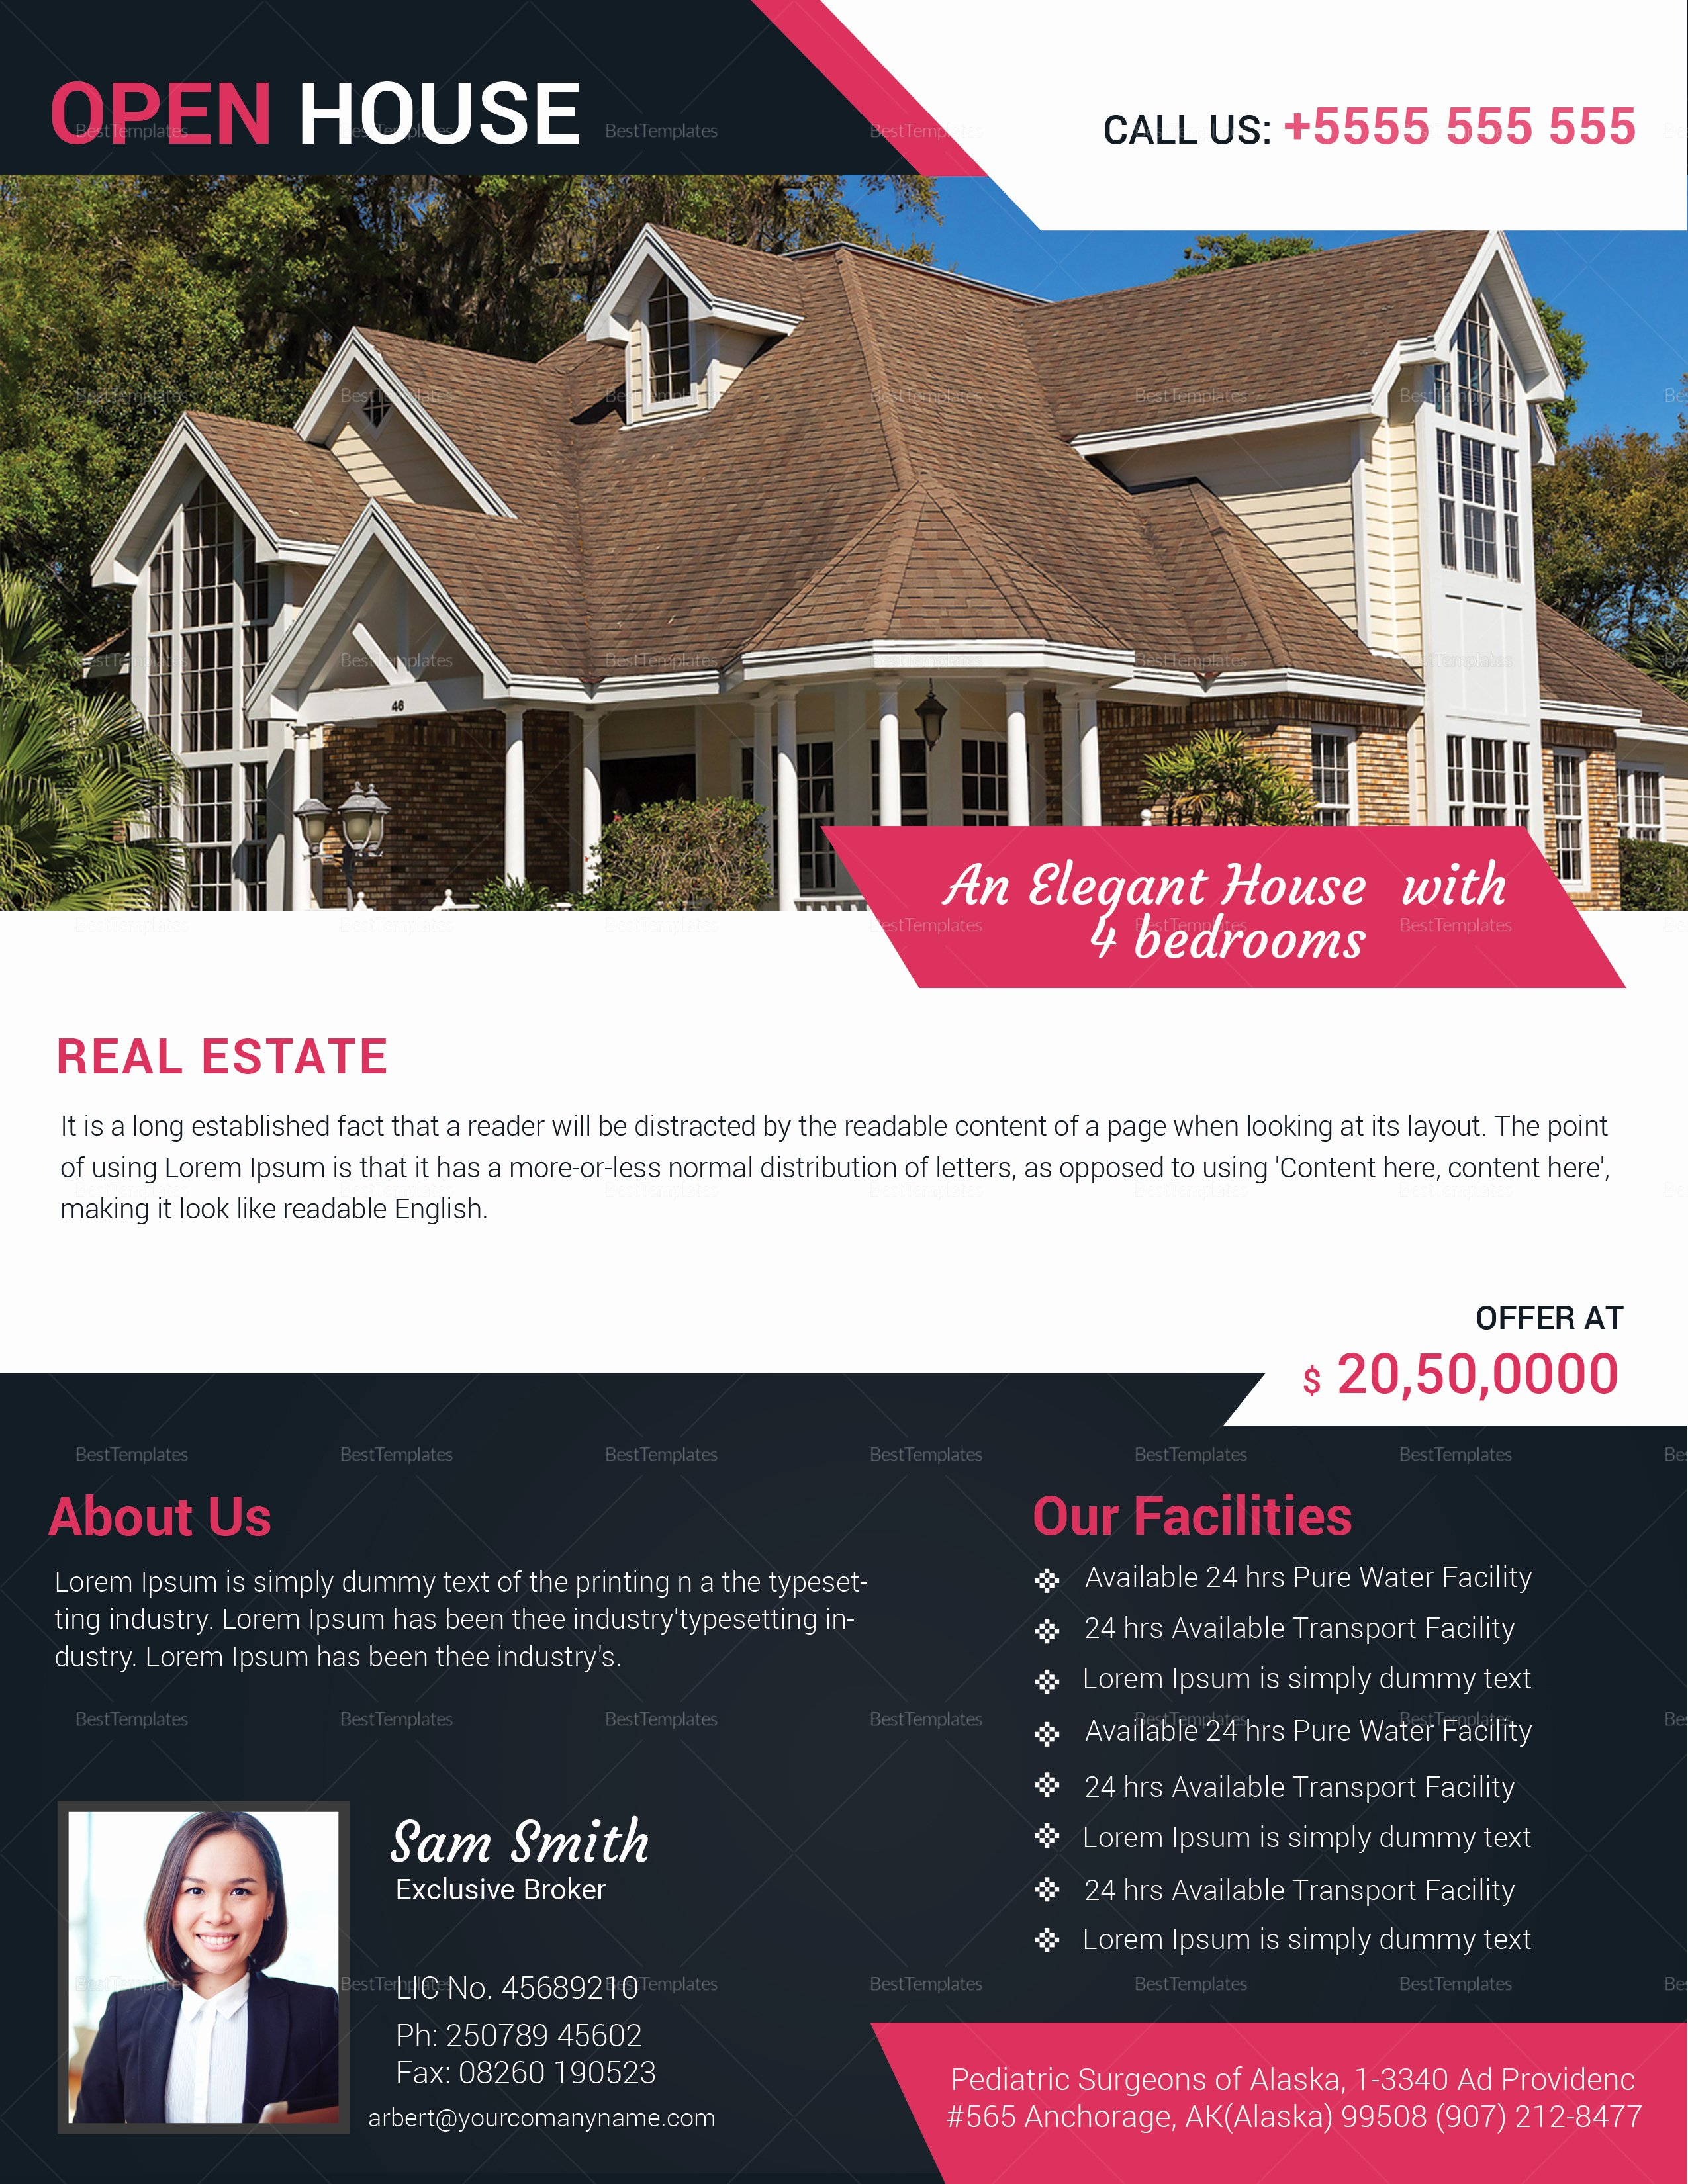 Open House Flyers Template Best Of Realtor Open House Flyer Design Template In Word Psd